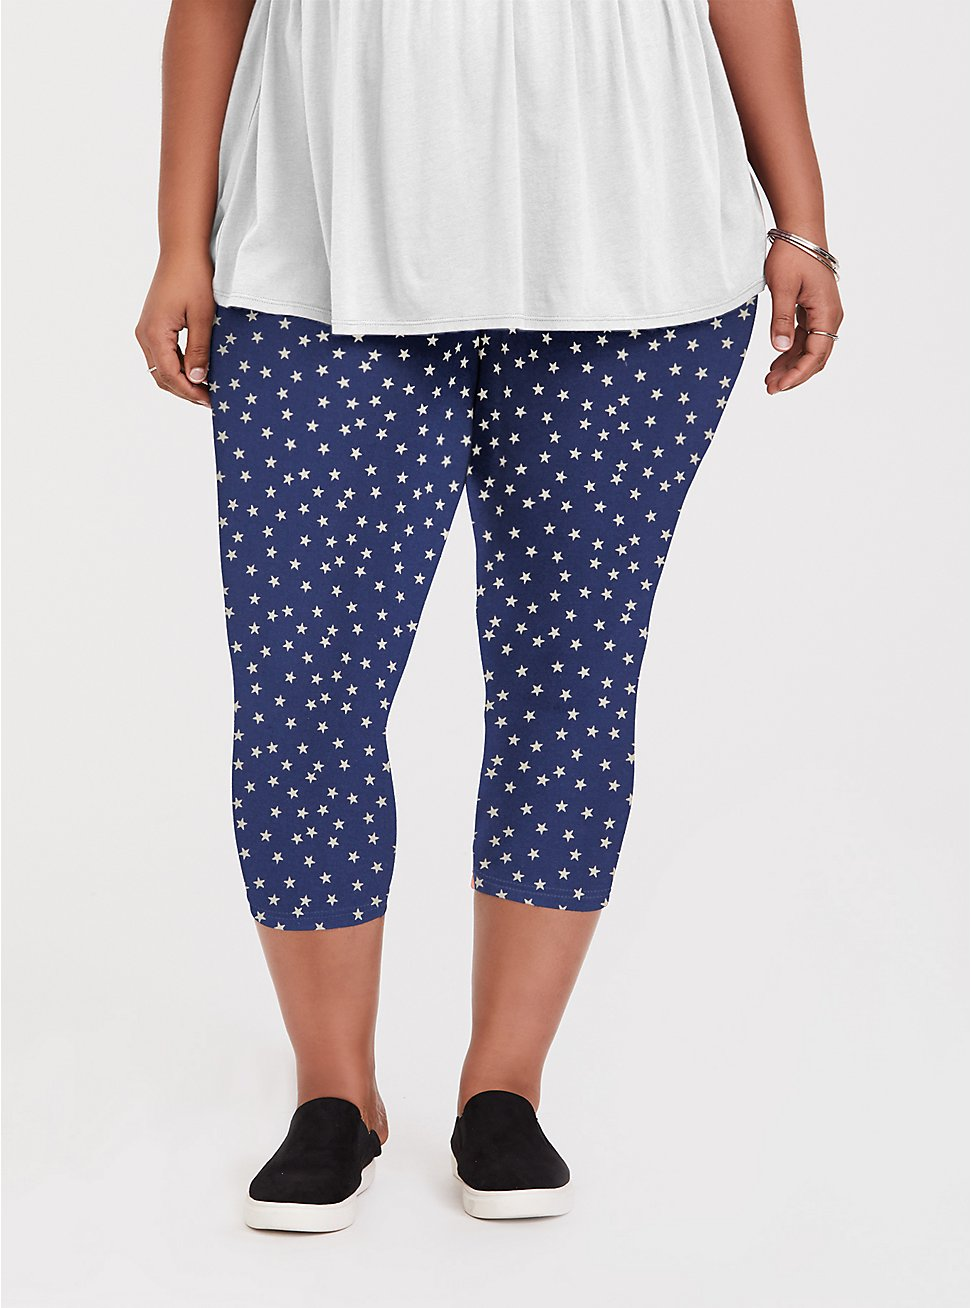 Crop Premium Legging - Navy Star, MULTI, hi-res